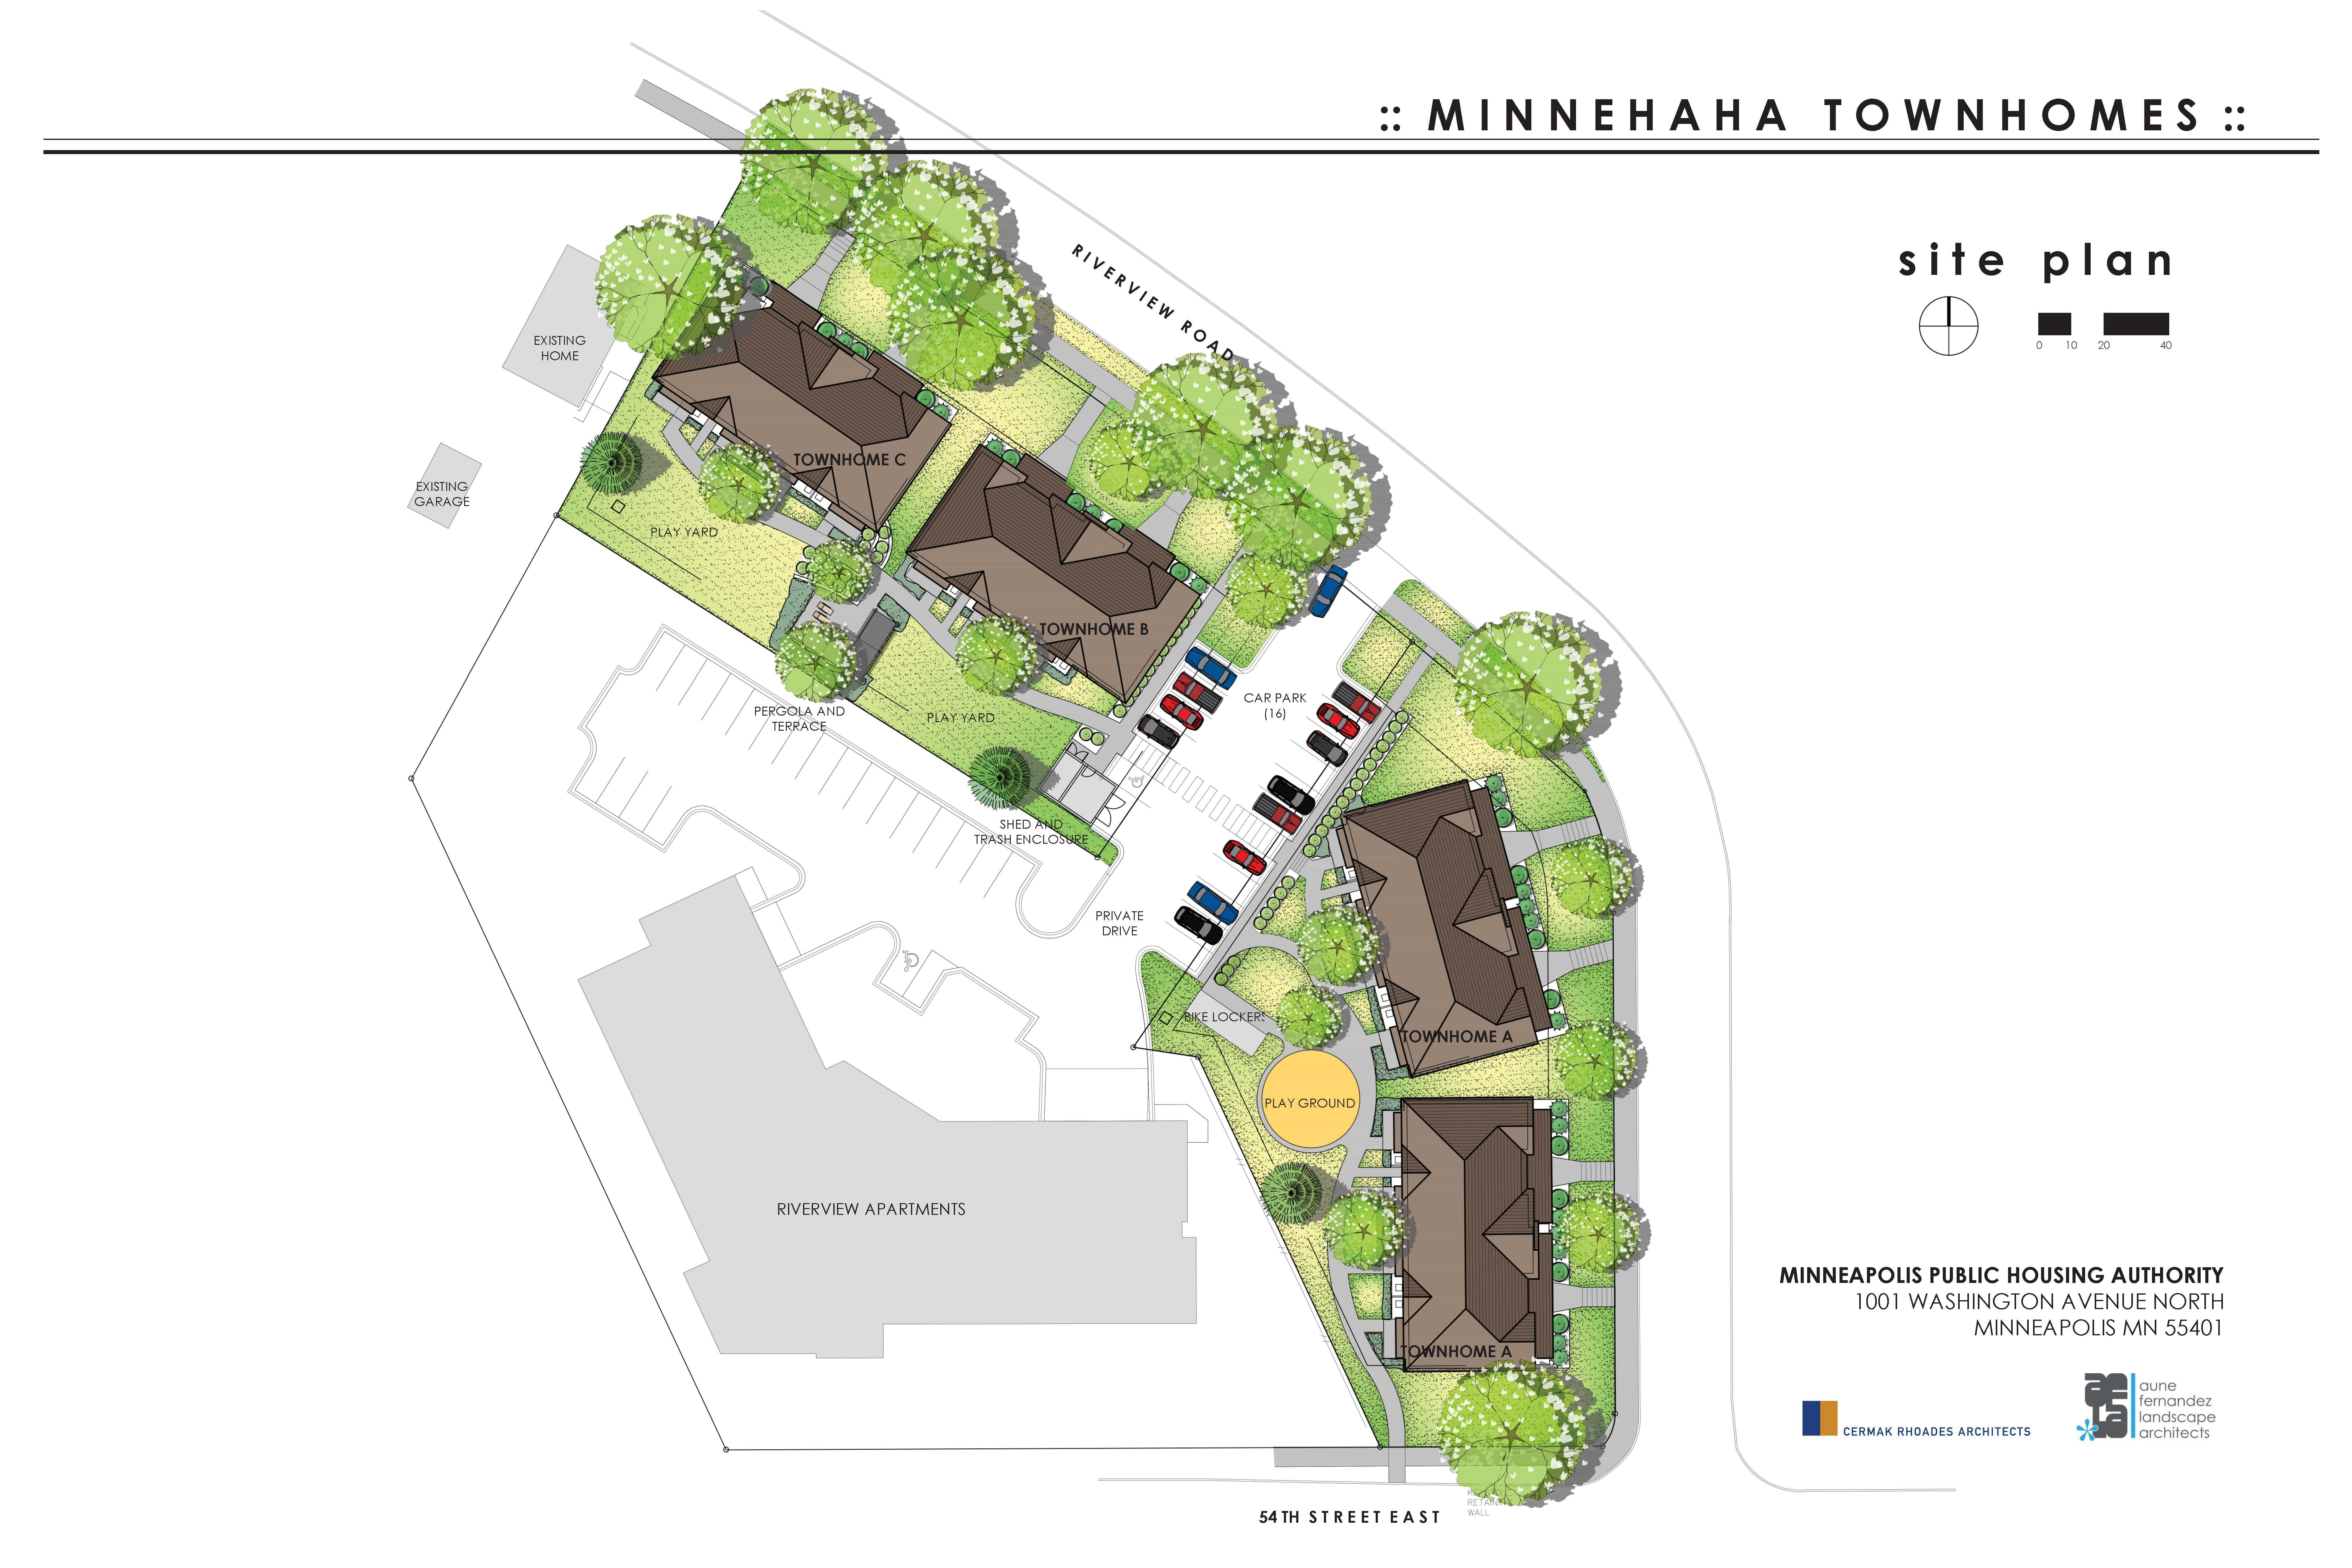 Minnehaha Townhomes Site Plan